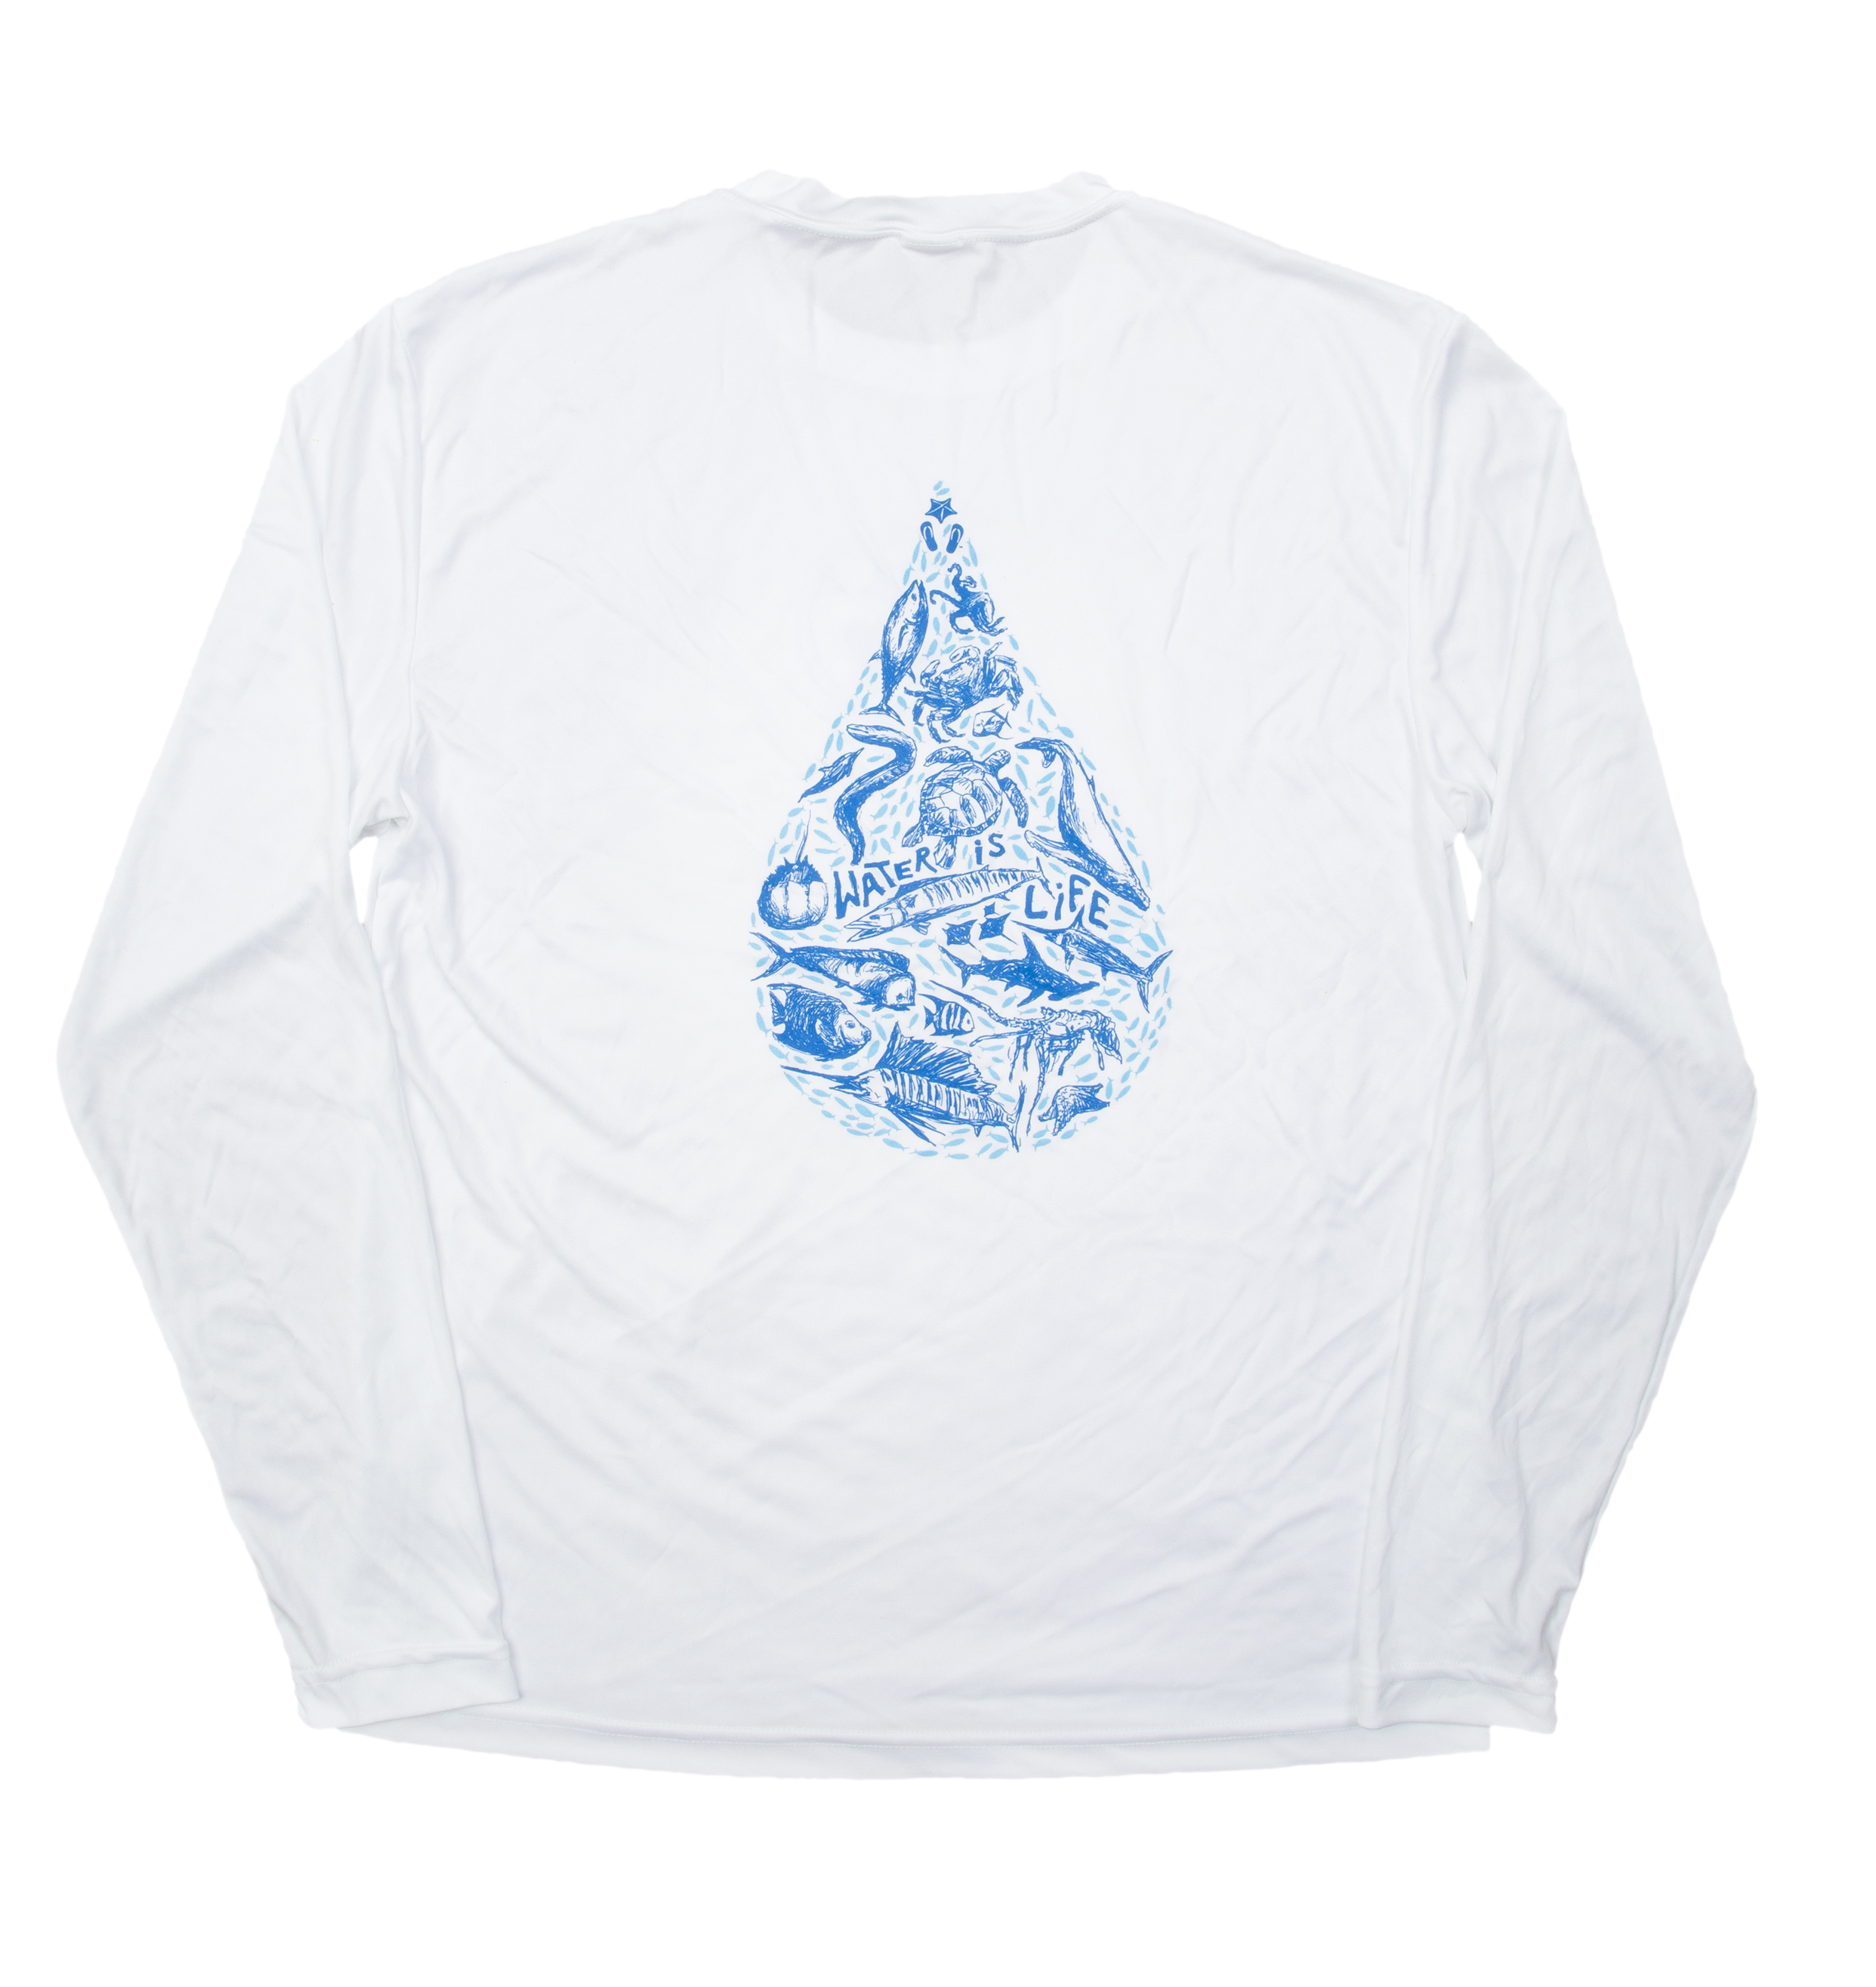 Featured product: unisex    Water Is Life  long-sleeved technical tee- $35.00